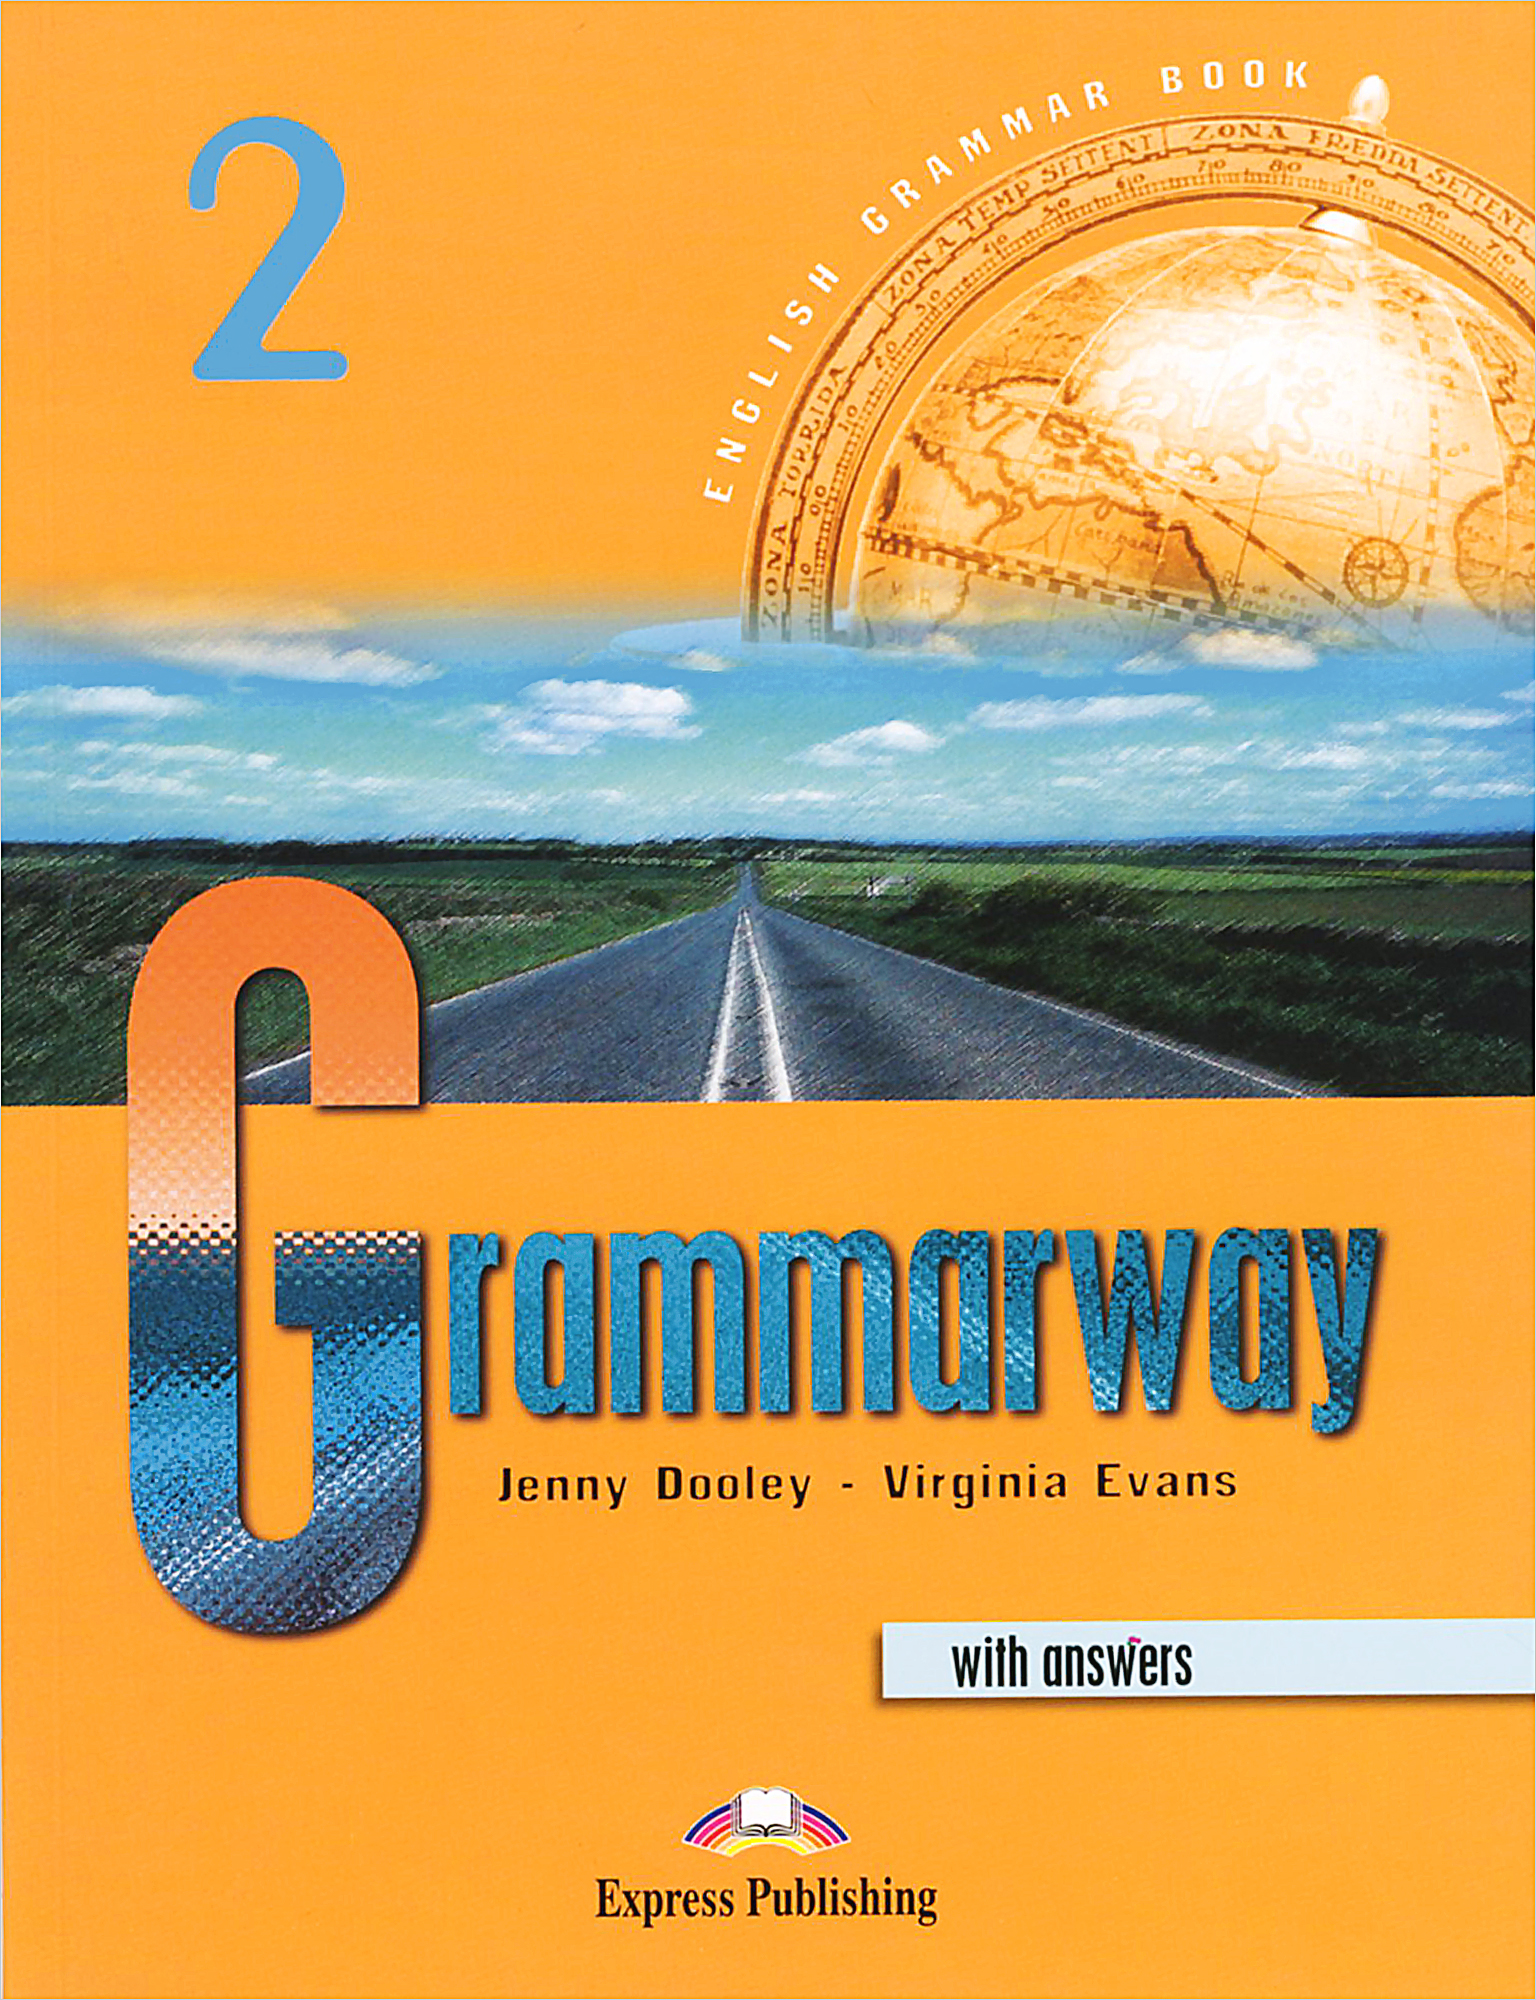 Grammarway 2 with Answers, Jenny Dooley, Virginia Evans